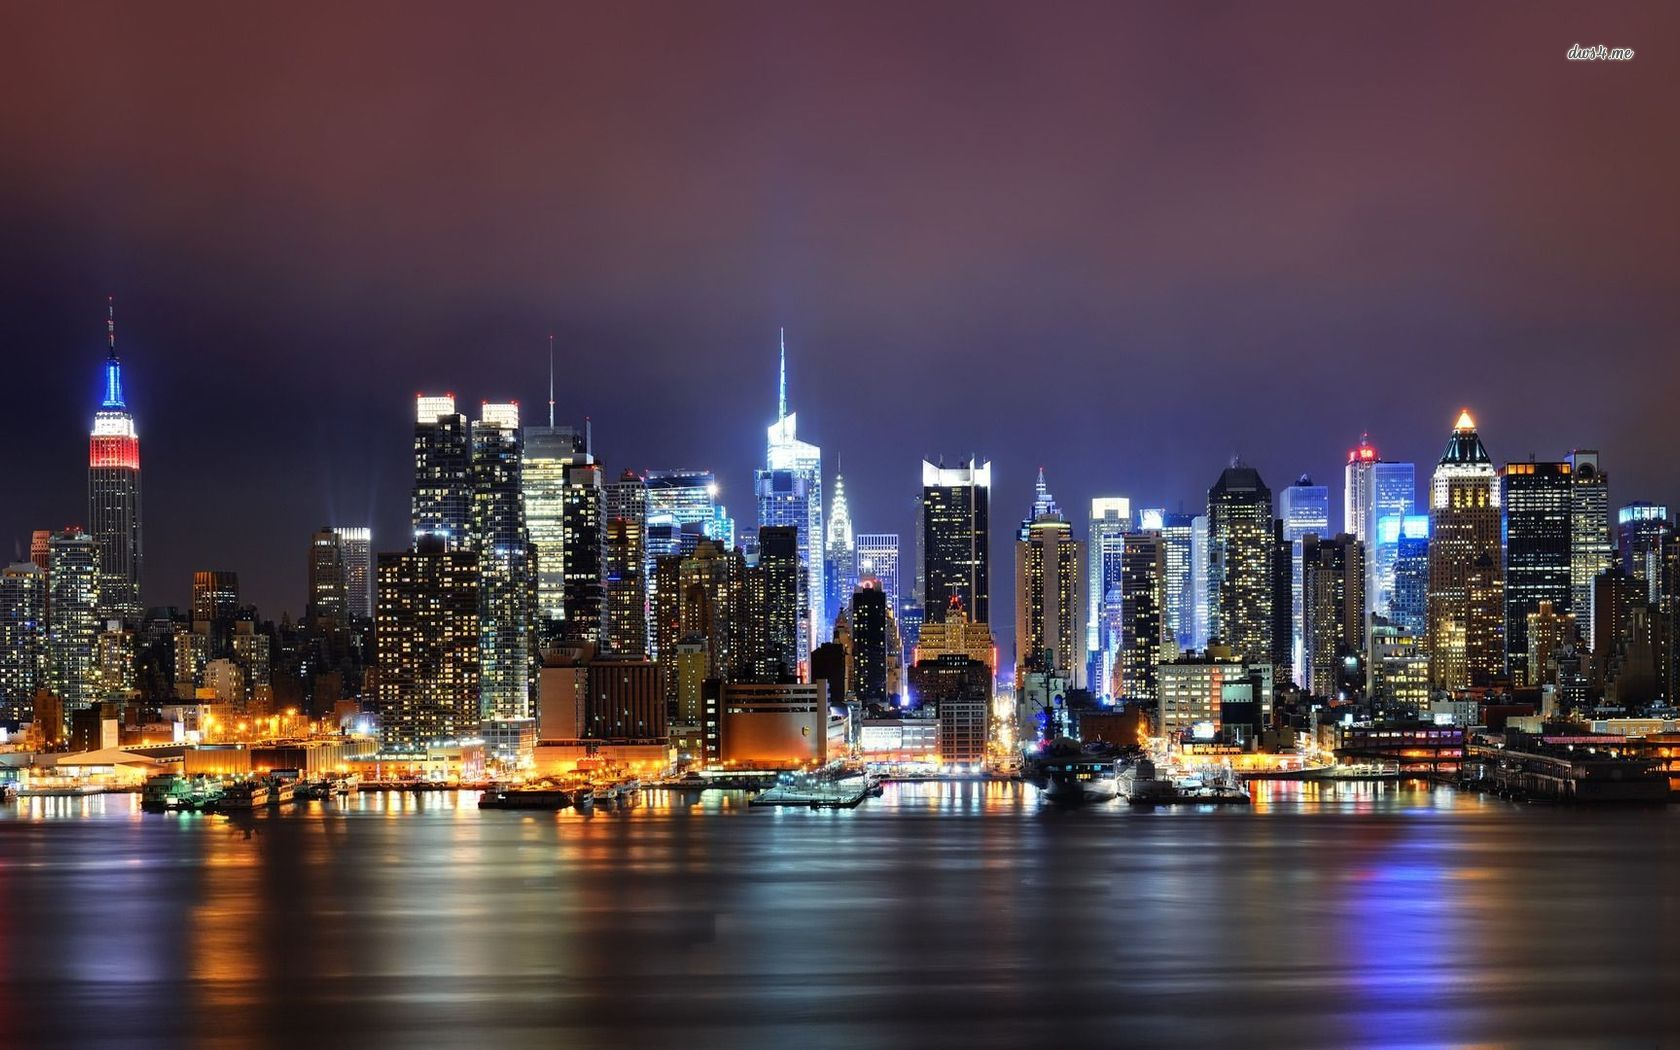 new york at night wallpaper 1680x1050